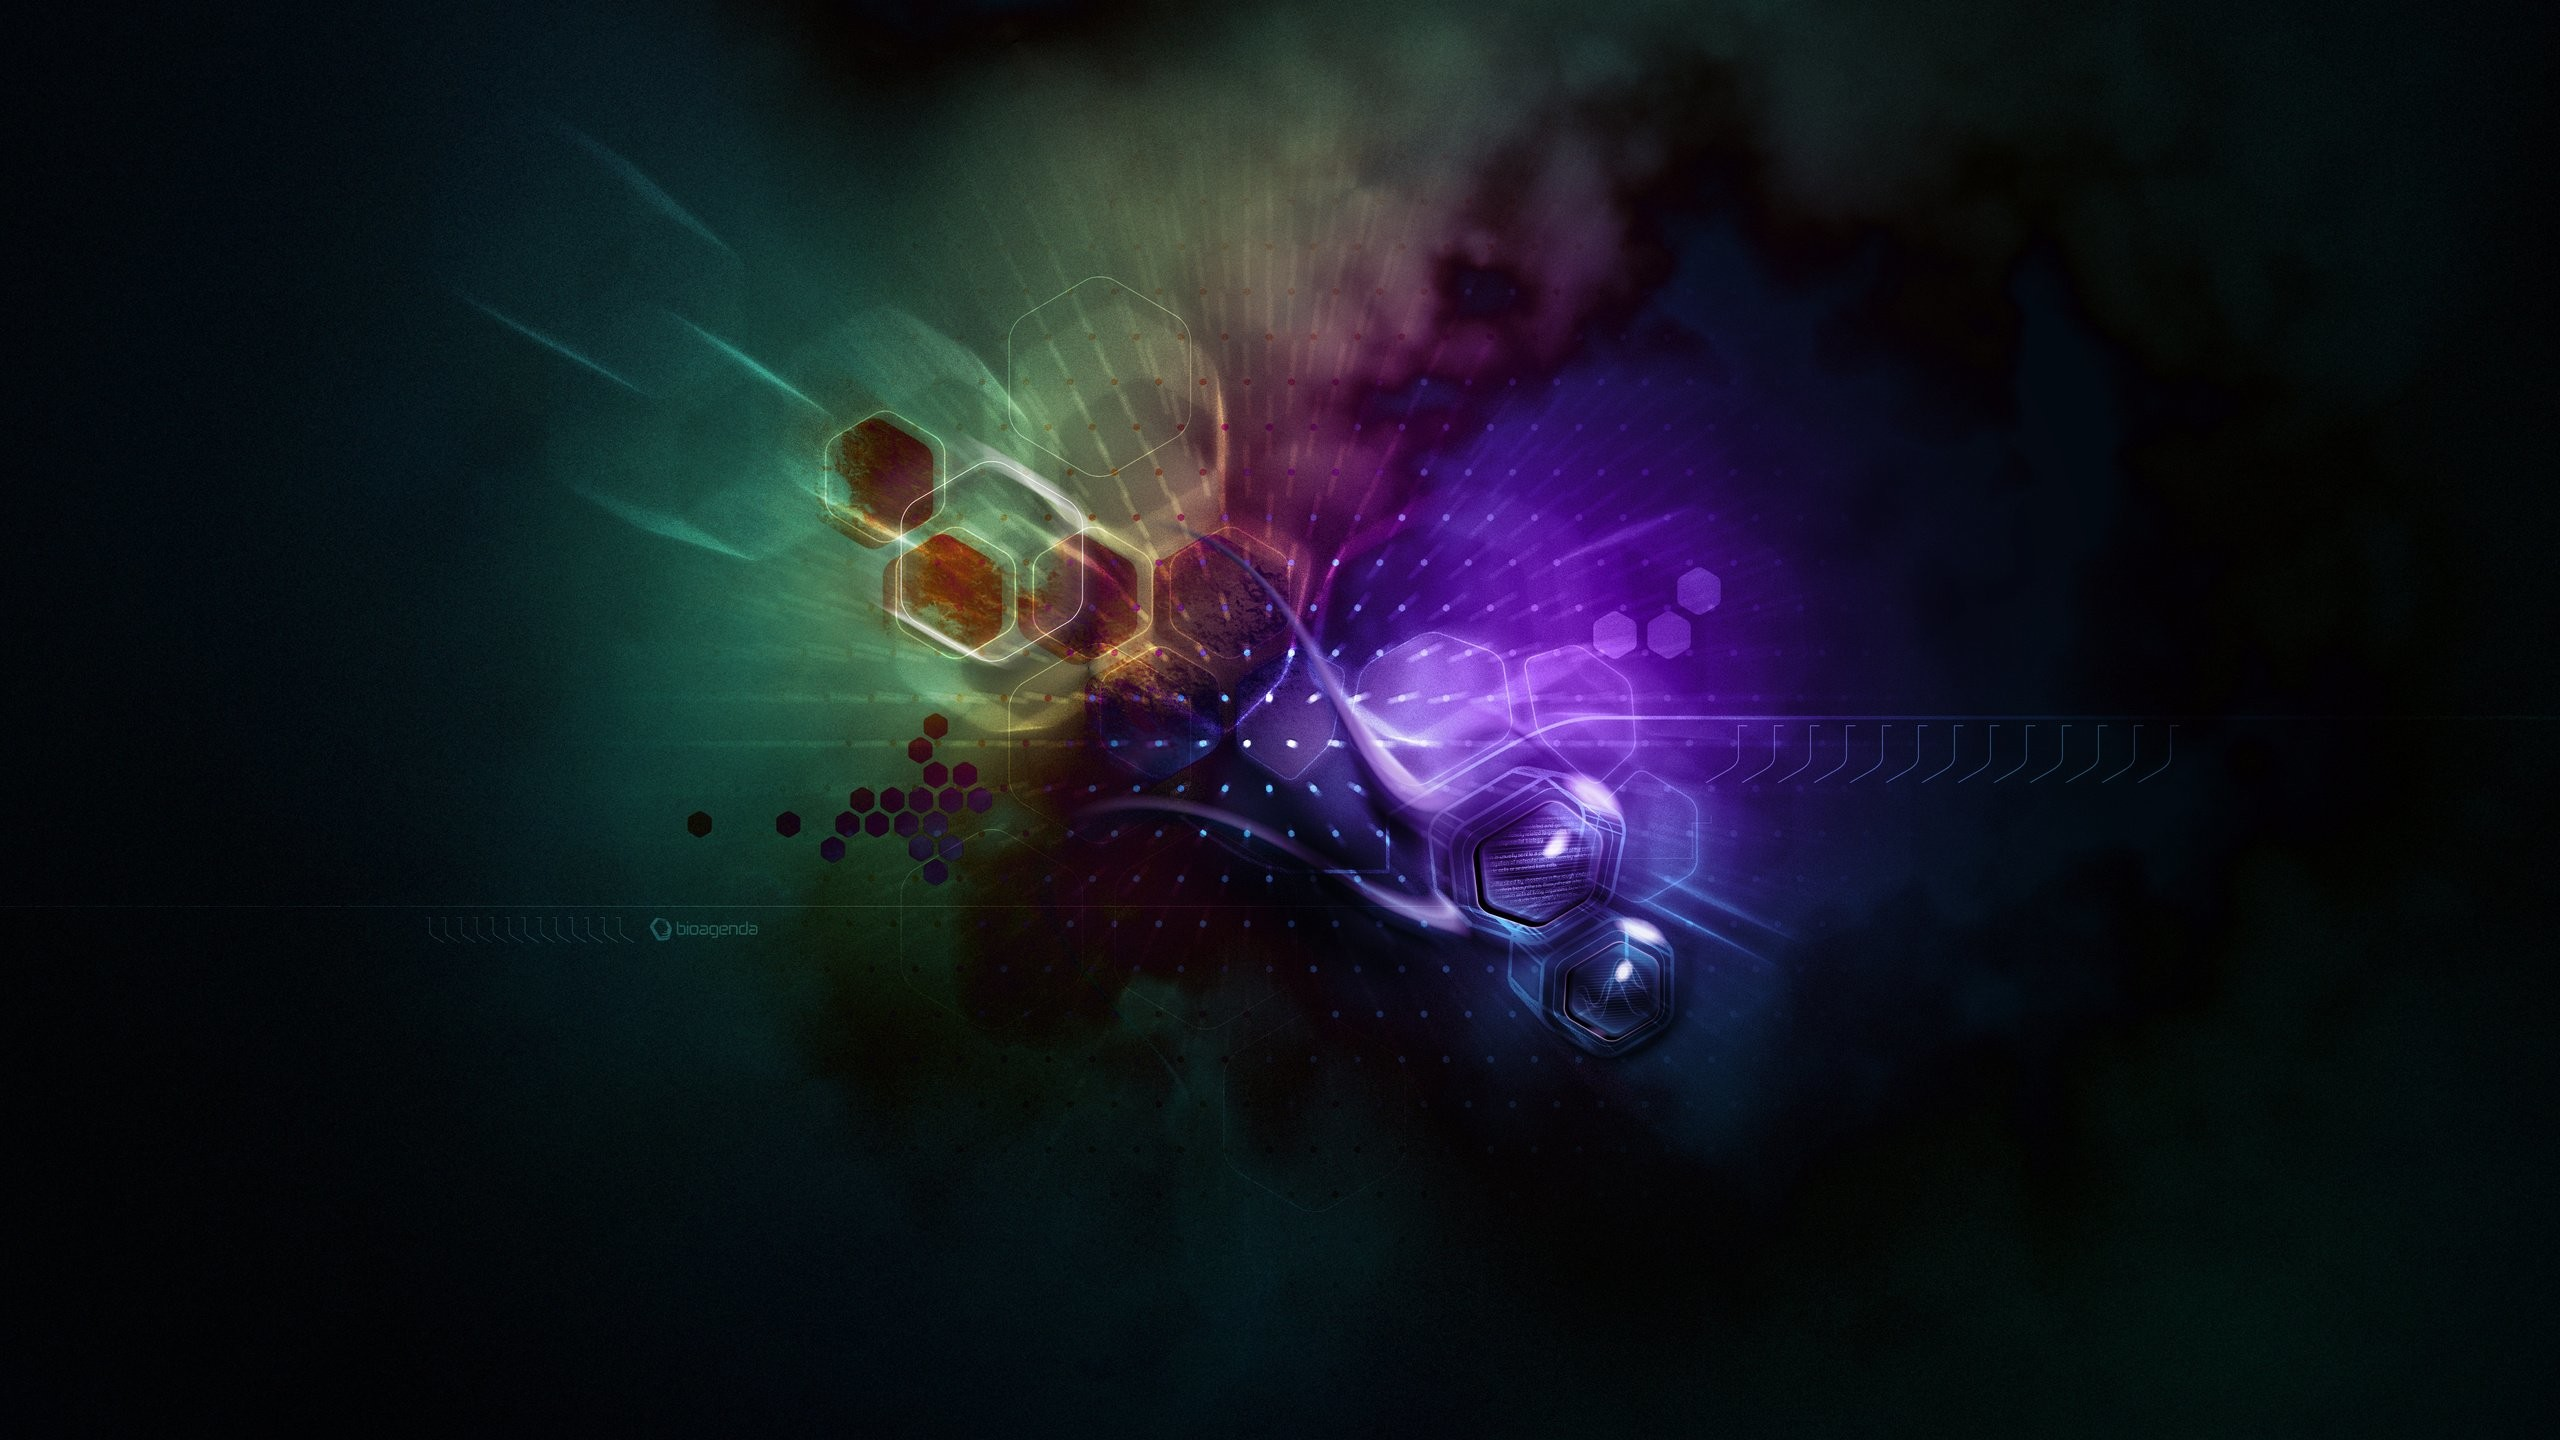 Chemistry Medical Biology Detail Medicine Psychedelic Science Abstract  Abstraction Genetics Wallpaper At 3d Wallpapers